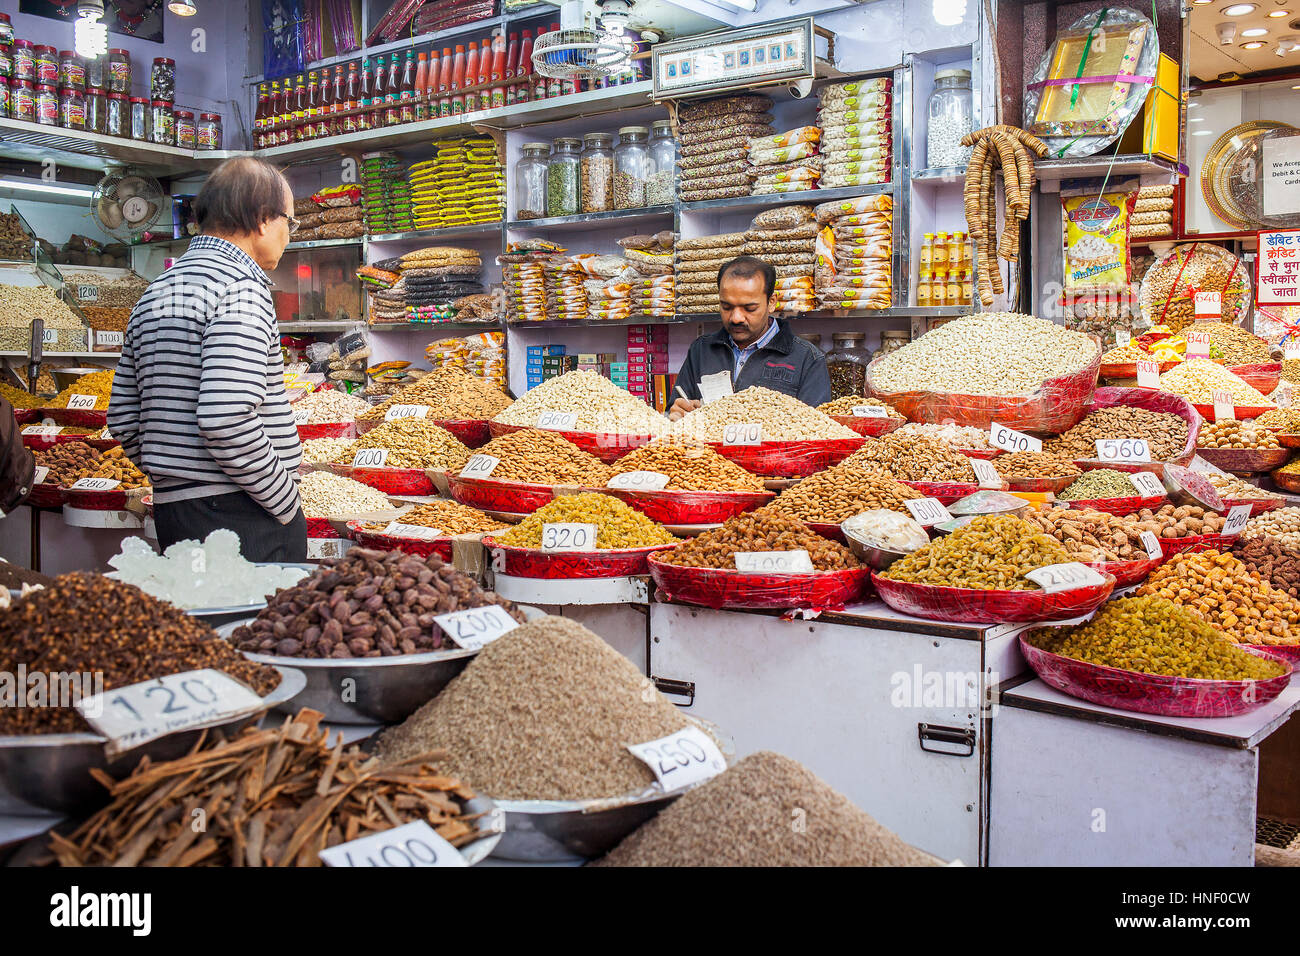 Spice market in khari baoli near chandni chowk old for City indian dining ltd t a spice trader